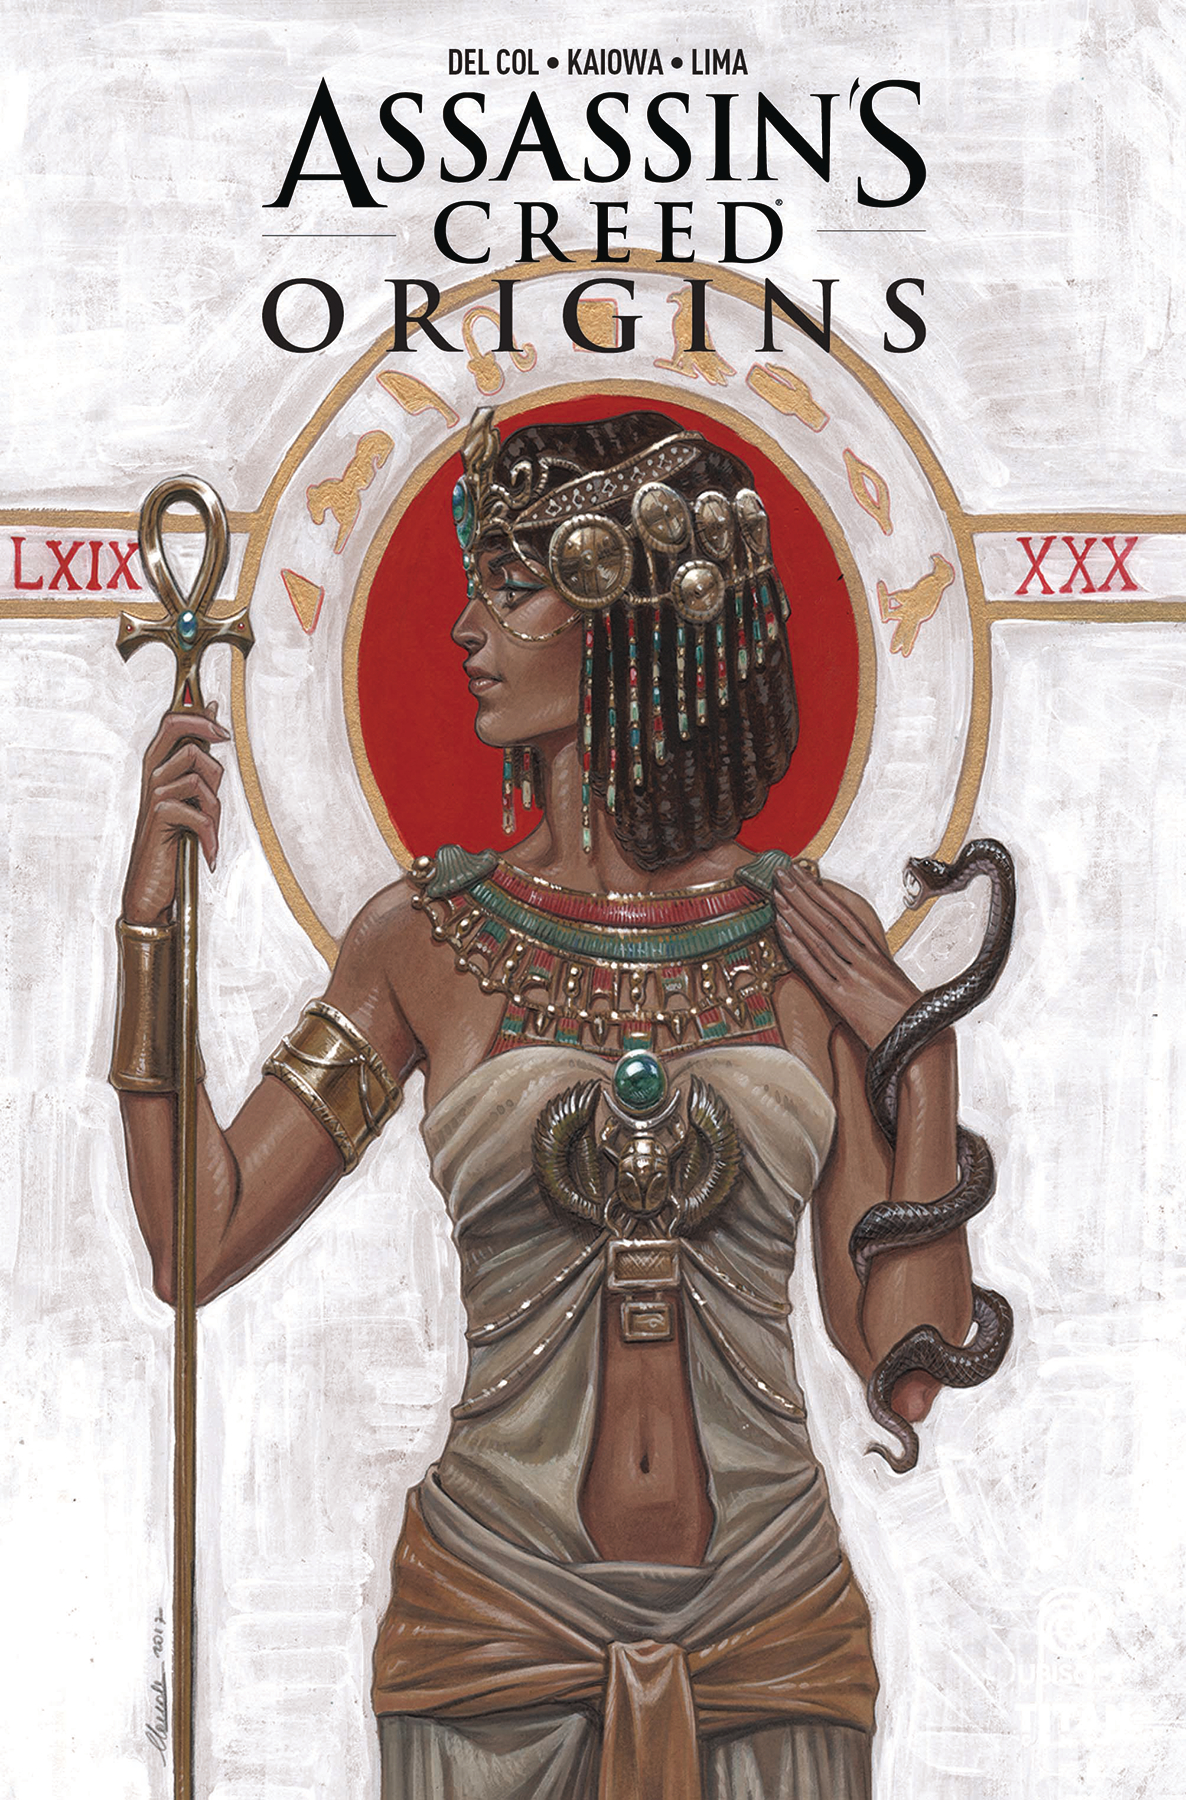 ASSASSINS CREED ORIGINS #4 (OF 4) CVR B IONNICIELLO